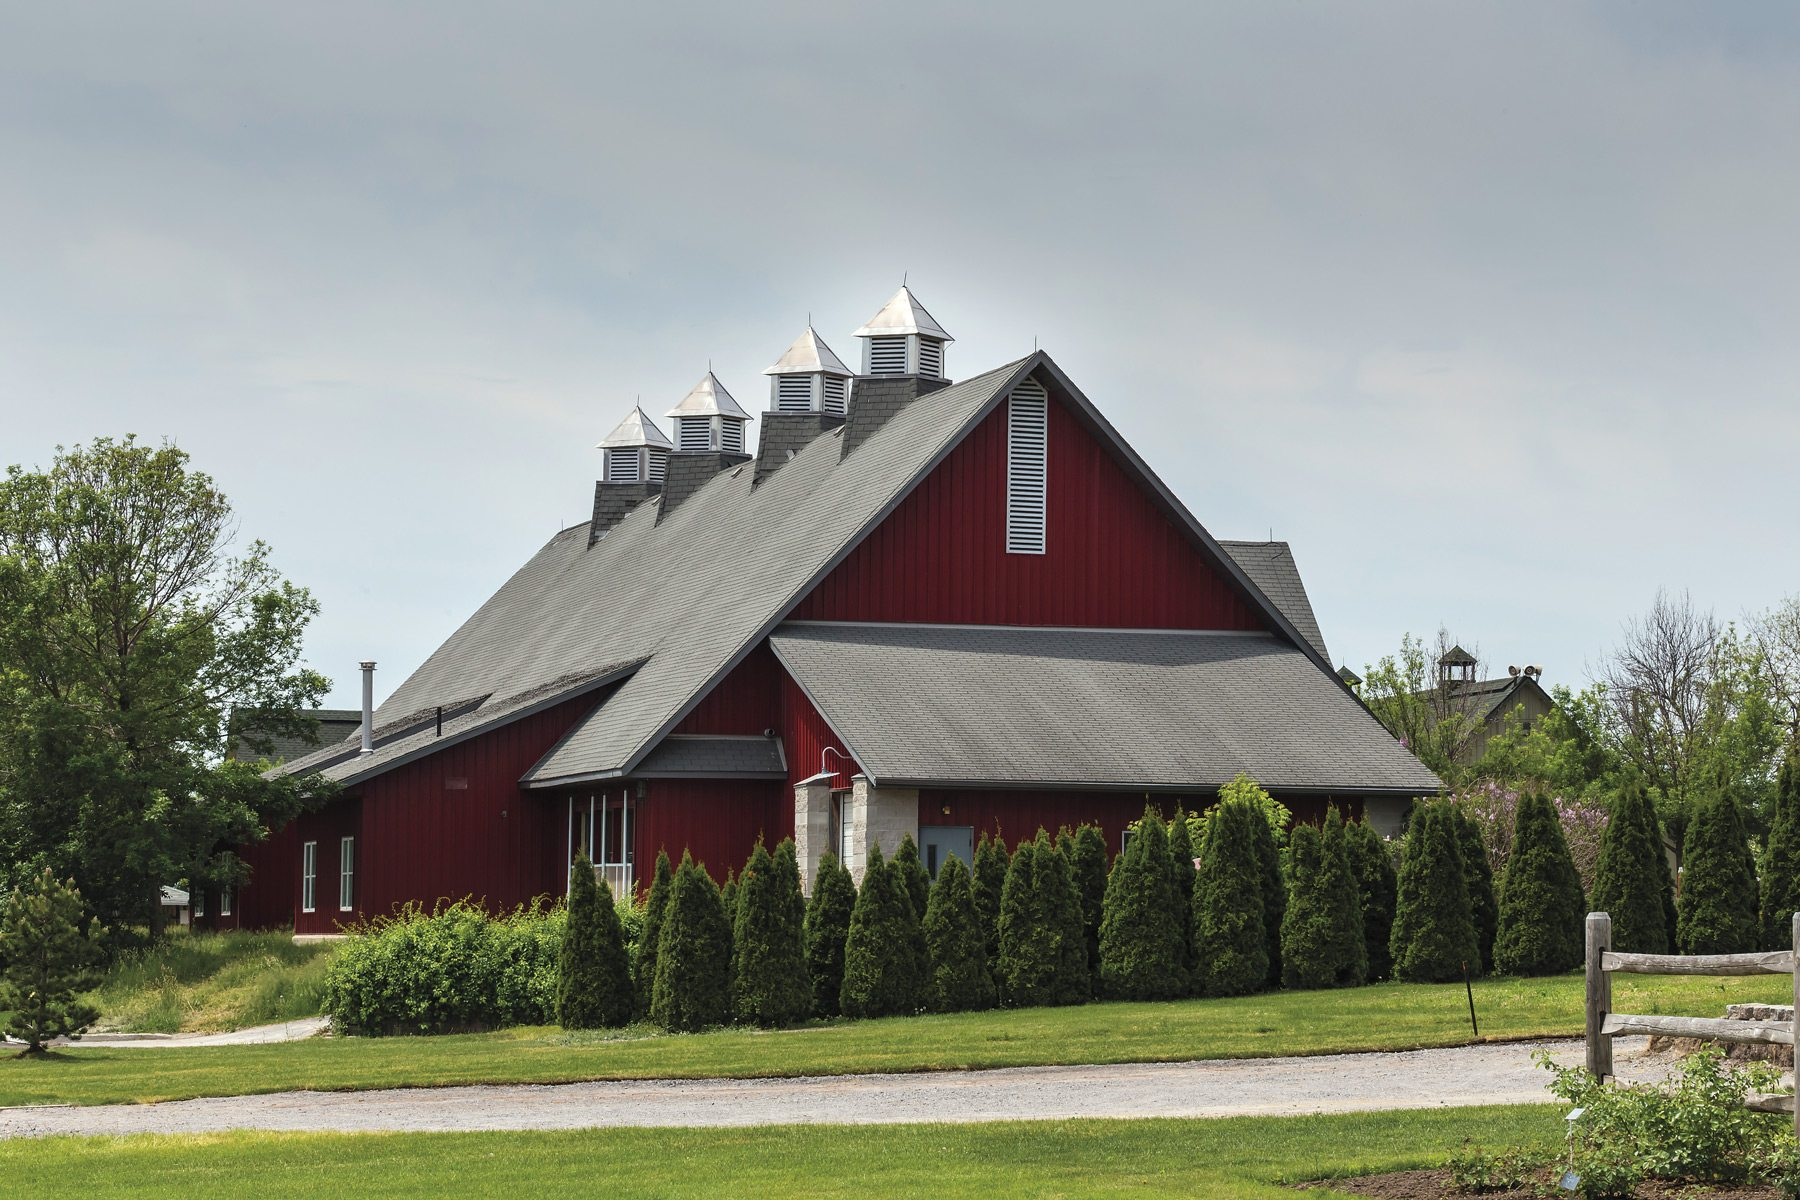 Photo: iStock Experimental Farm Barn